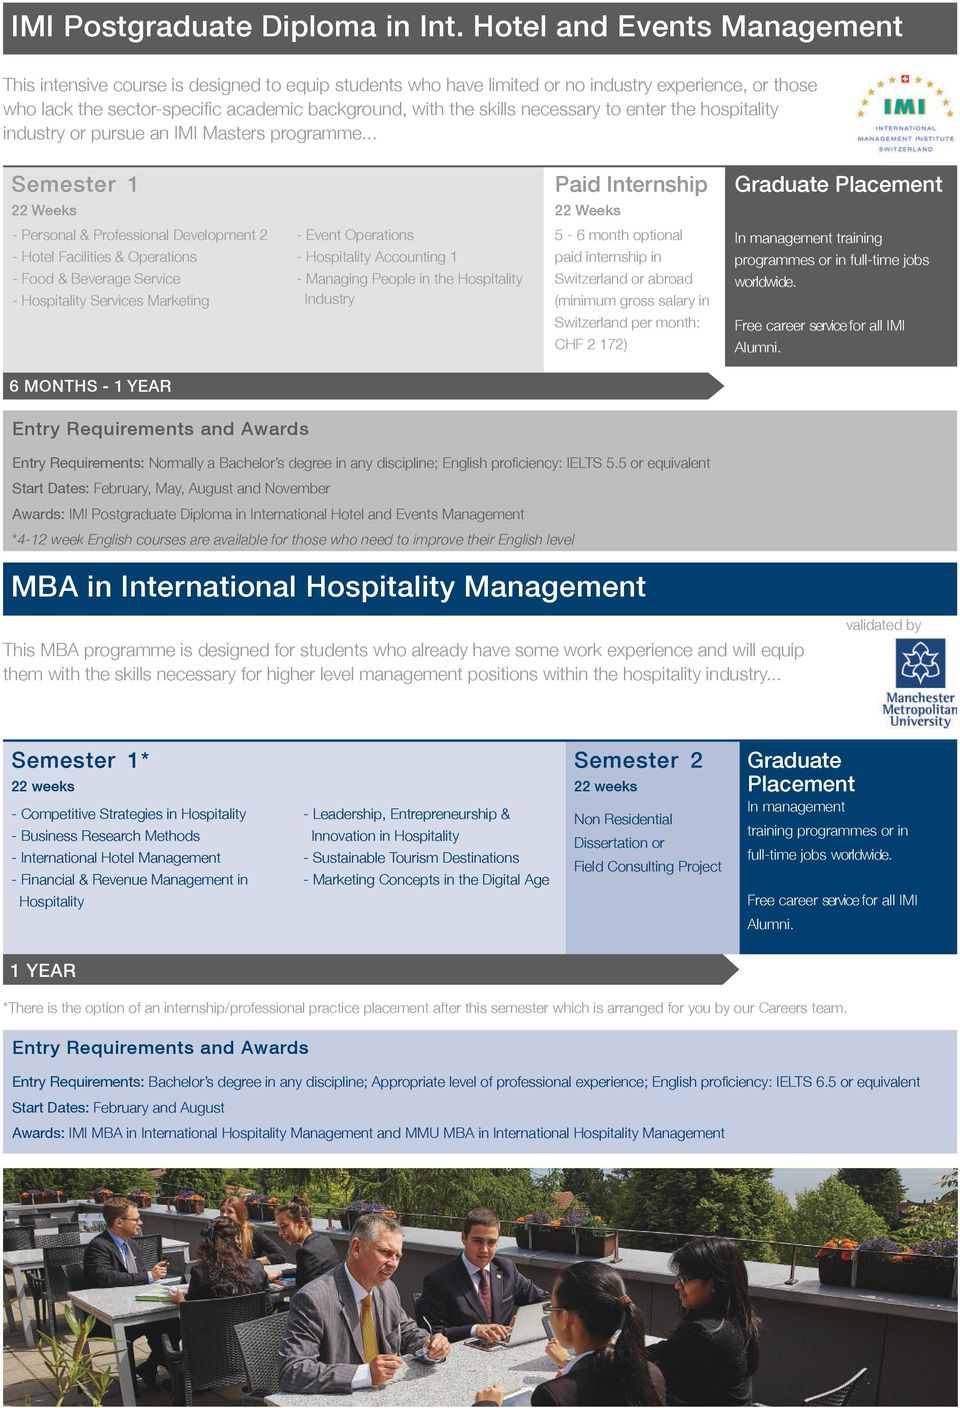 necessary to enter the hospitality industry or pursue an IMI Masters programme.